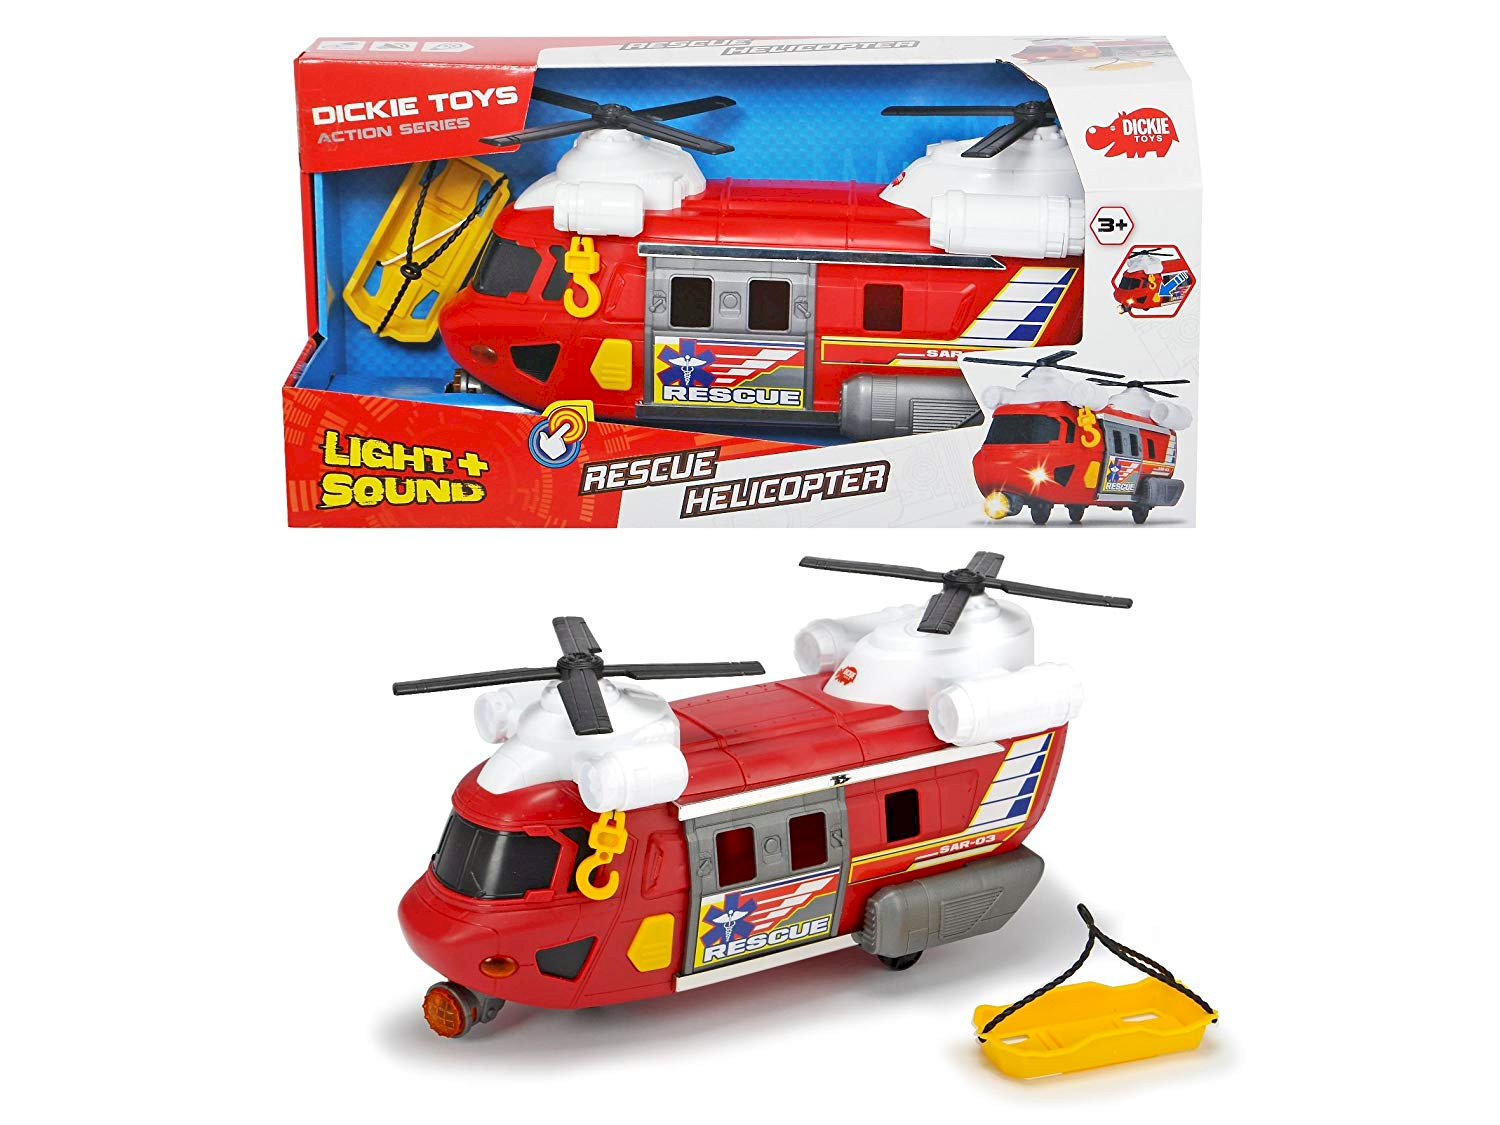 Giant Rescue Helicopter